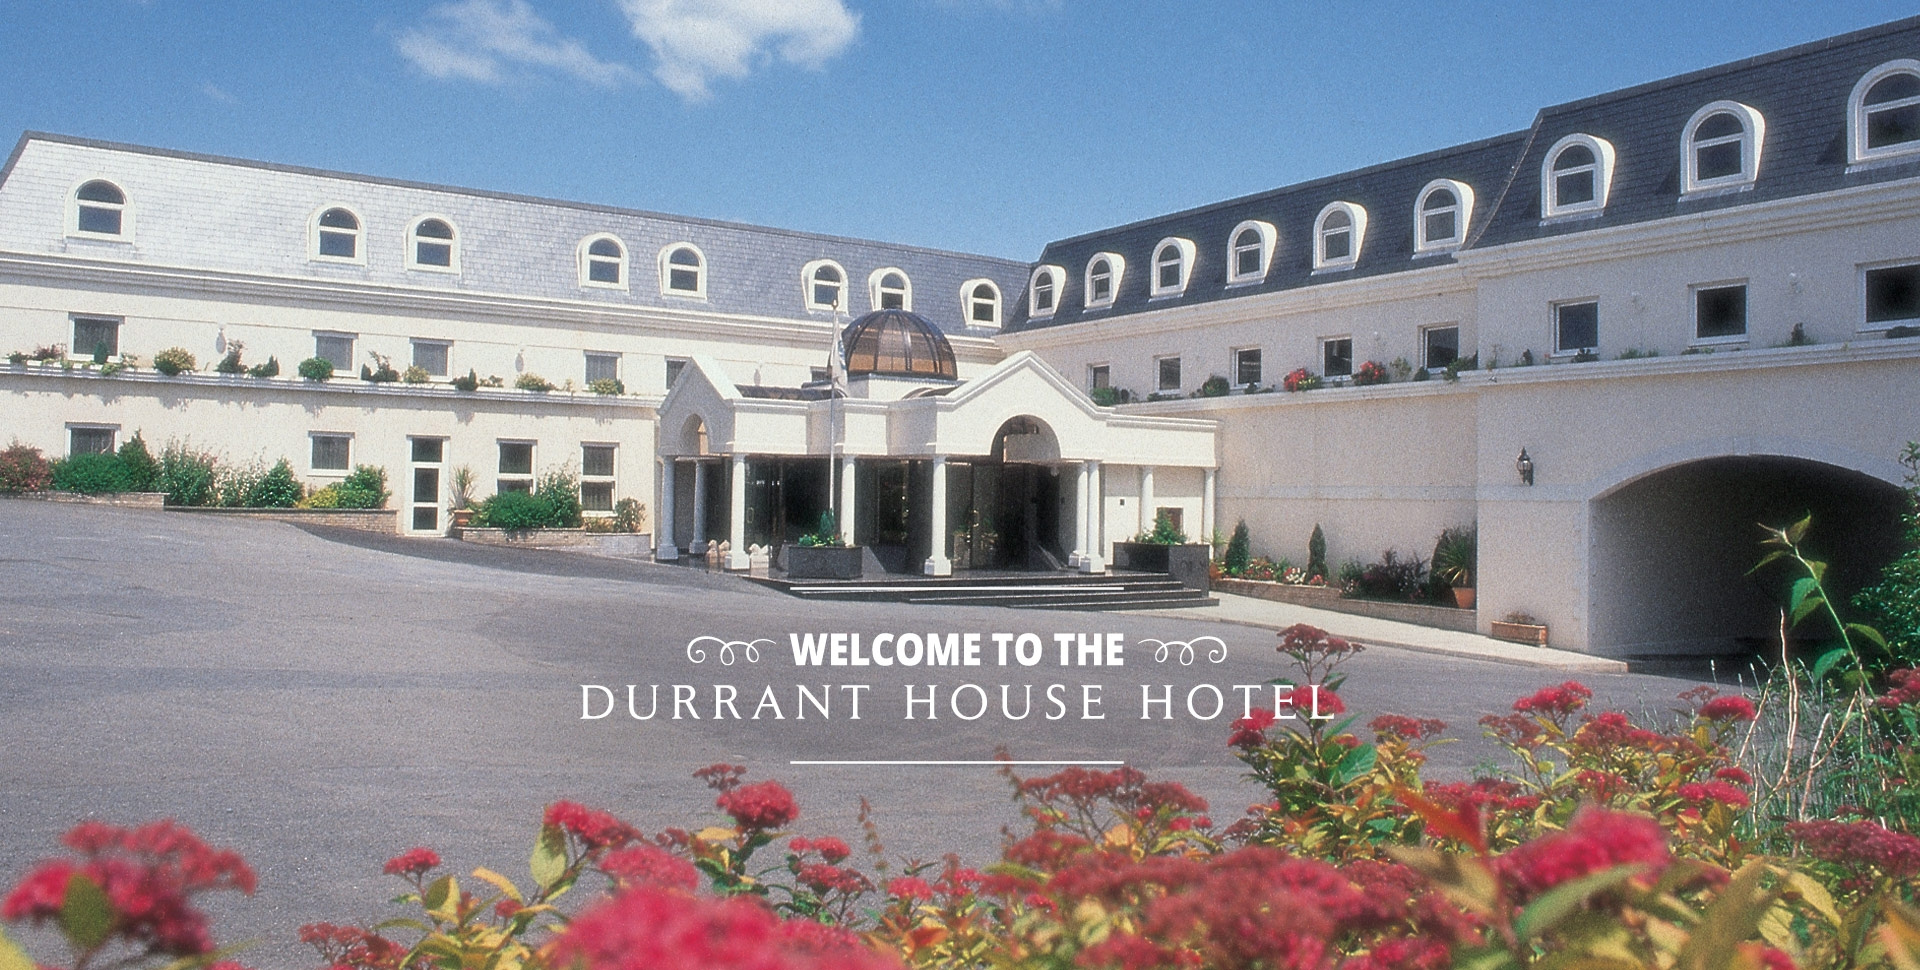 The Durrant House Hotel Bideford